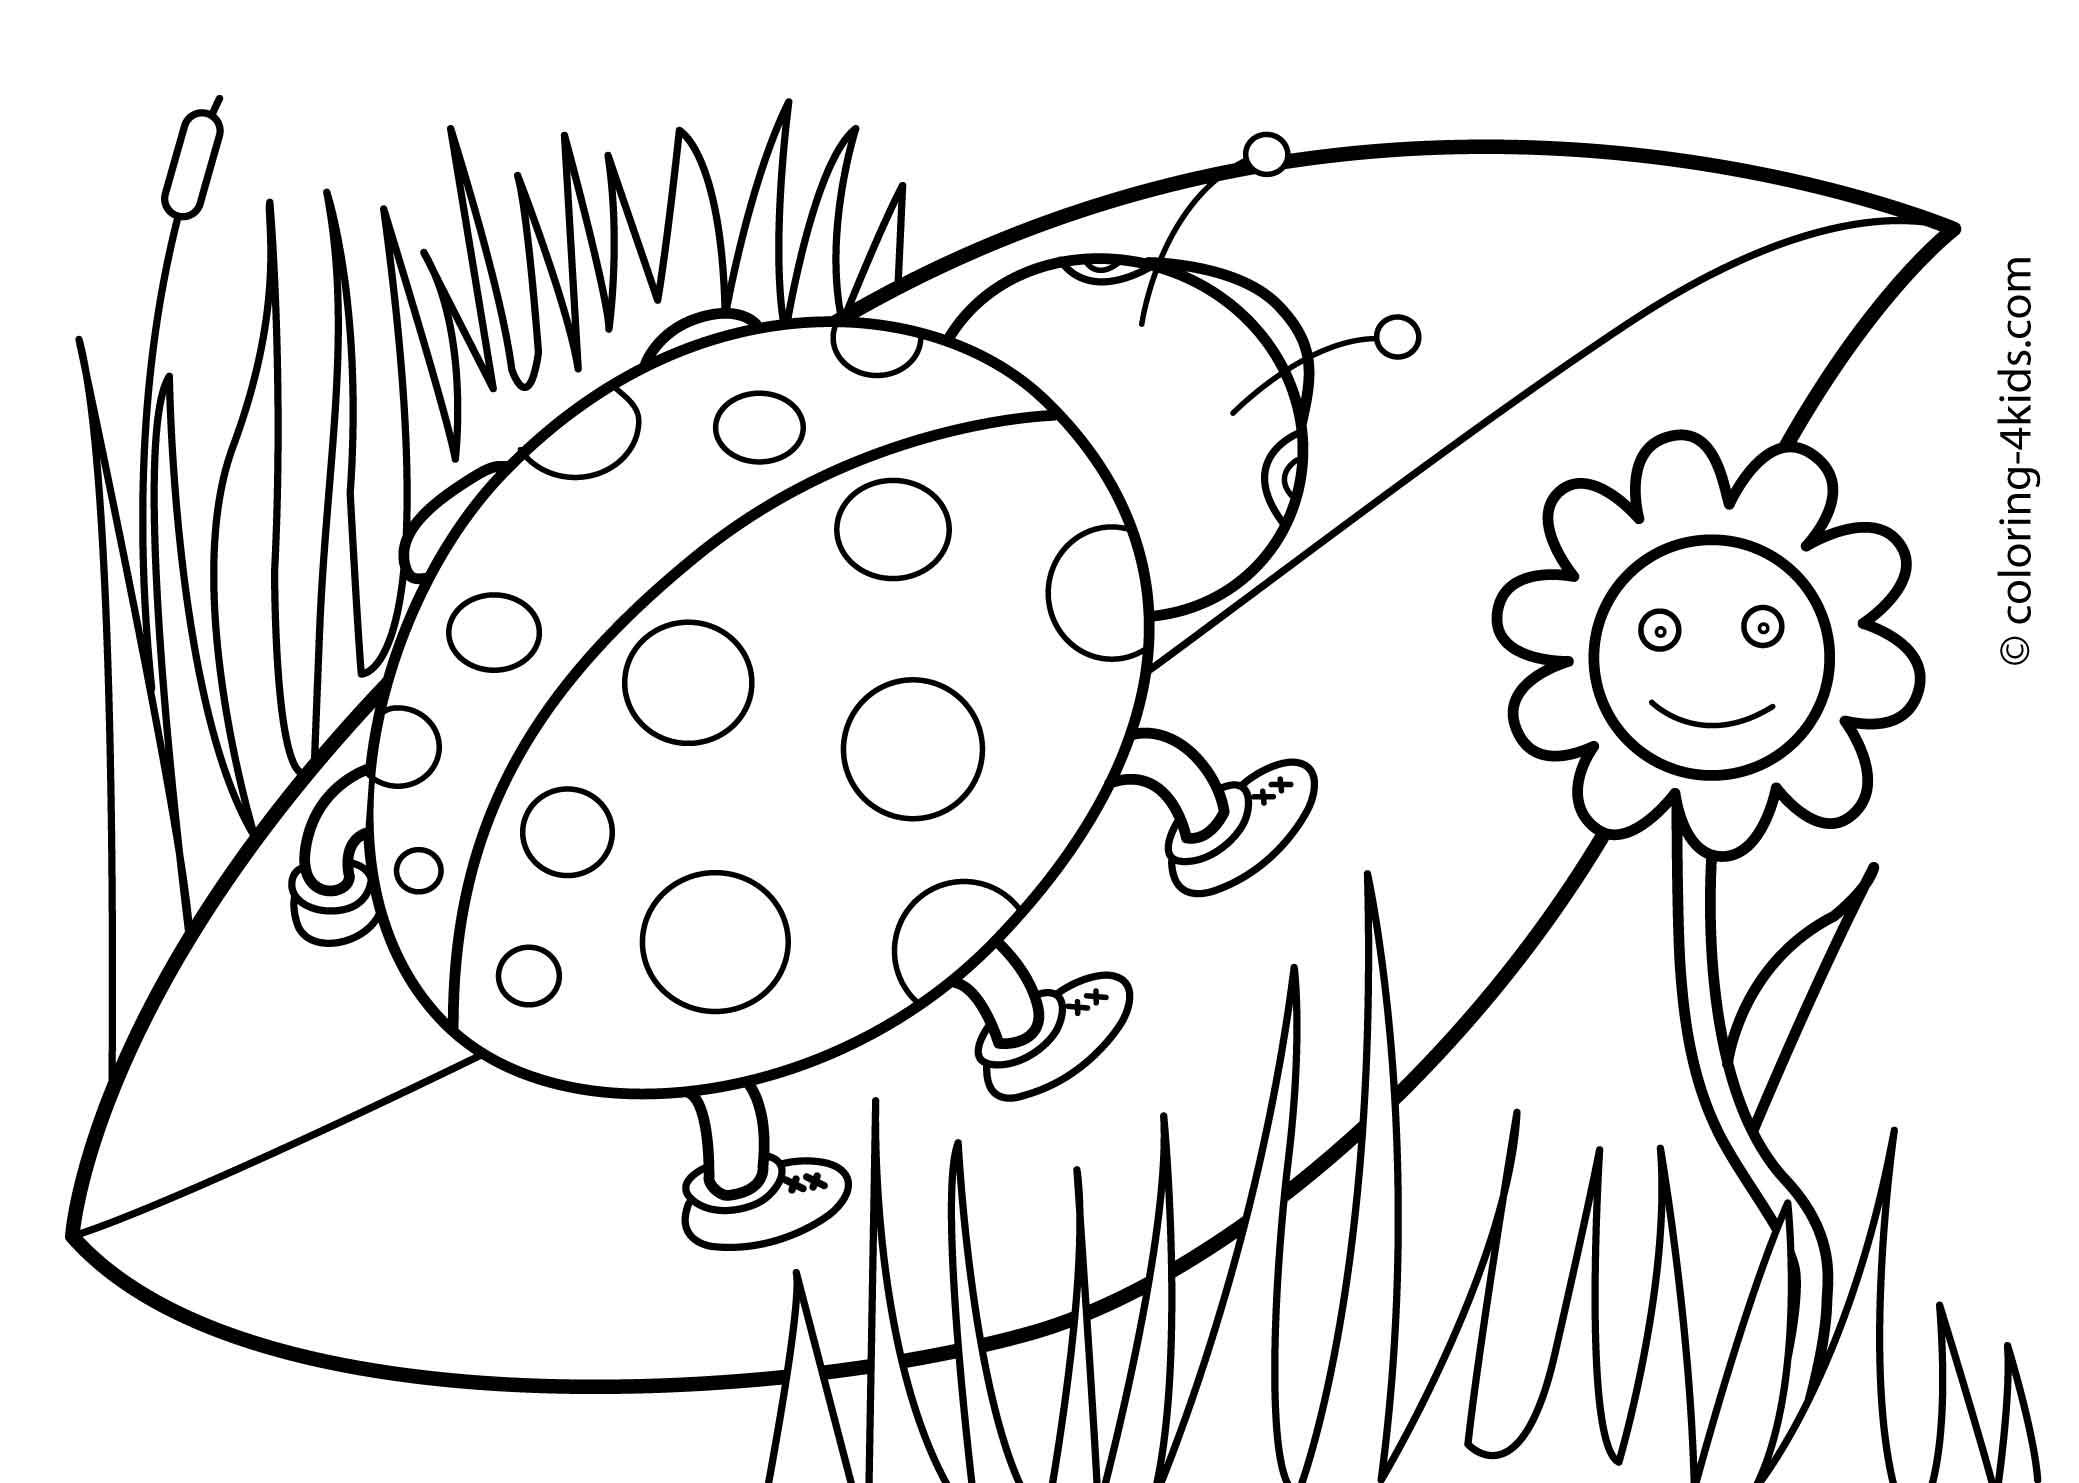 2079x1483 Simple Car Transportation Coloring Pages For Kids Printable Free